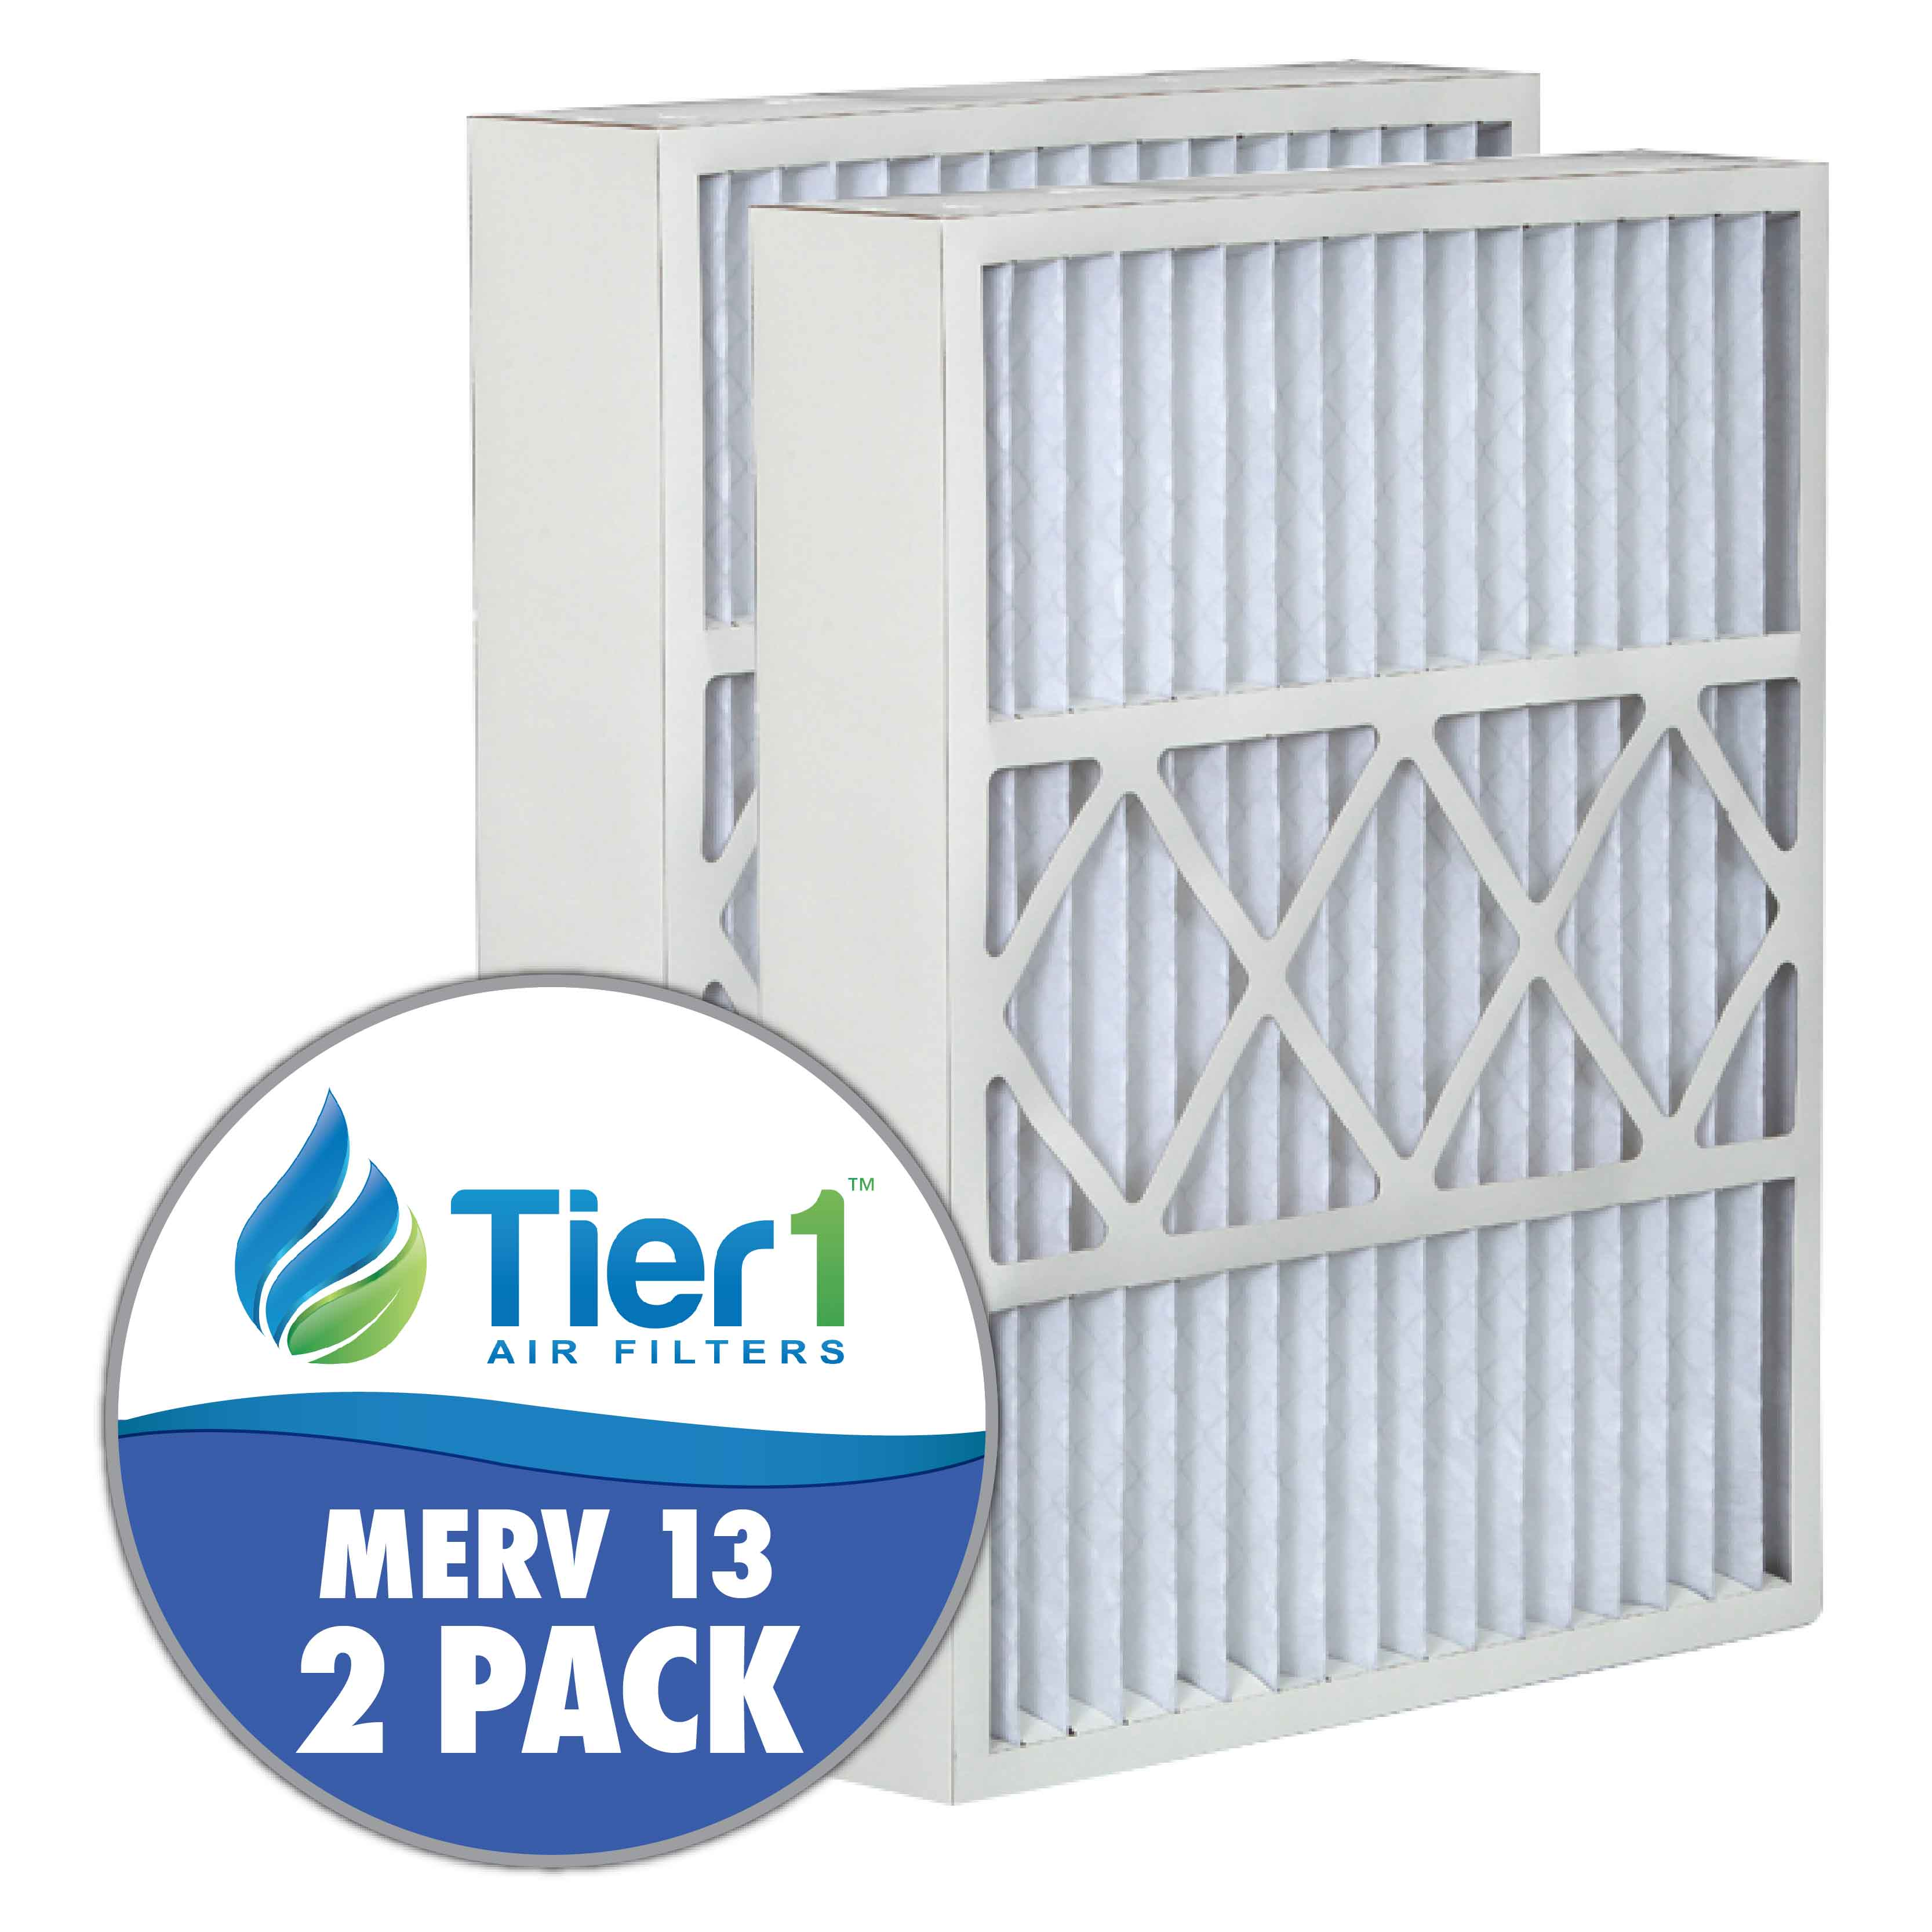 Tier1 brand replacement for Honeywell FC100A1003 & FC200E1003 - 16 x 20 x 5 - MERV 13 (2-Pack) TIER1-DPFW16X20X5M13